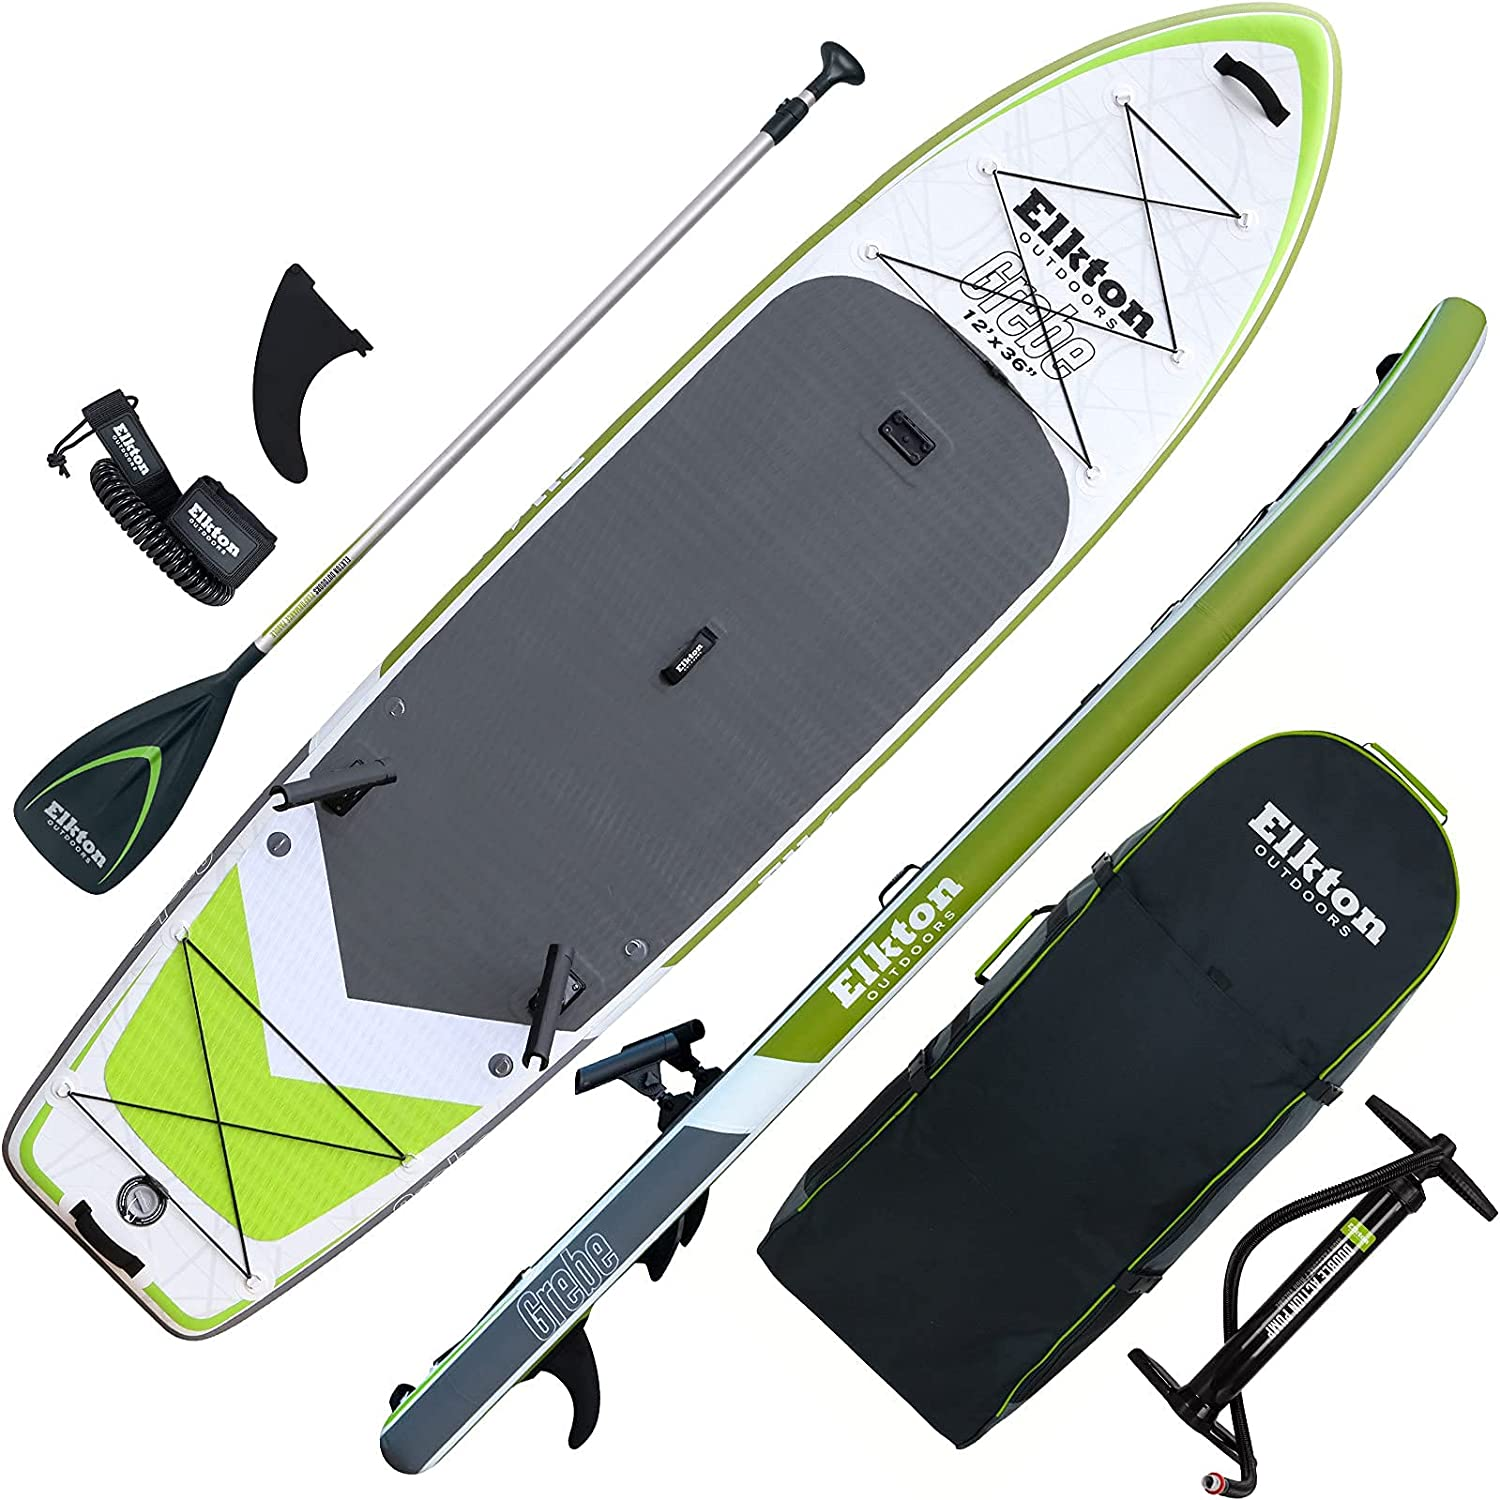 Elkton Outdoors Grebe Inflatable Fishing Paddle-Board